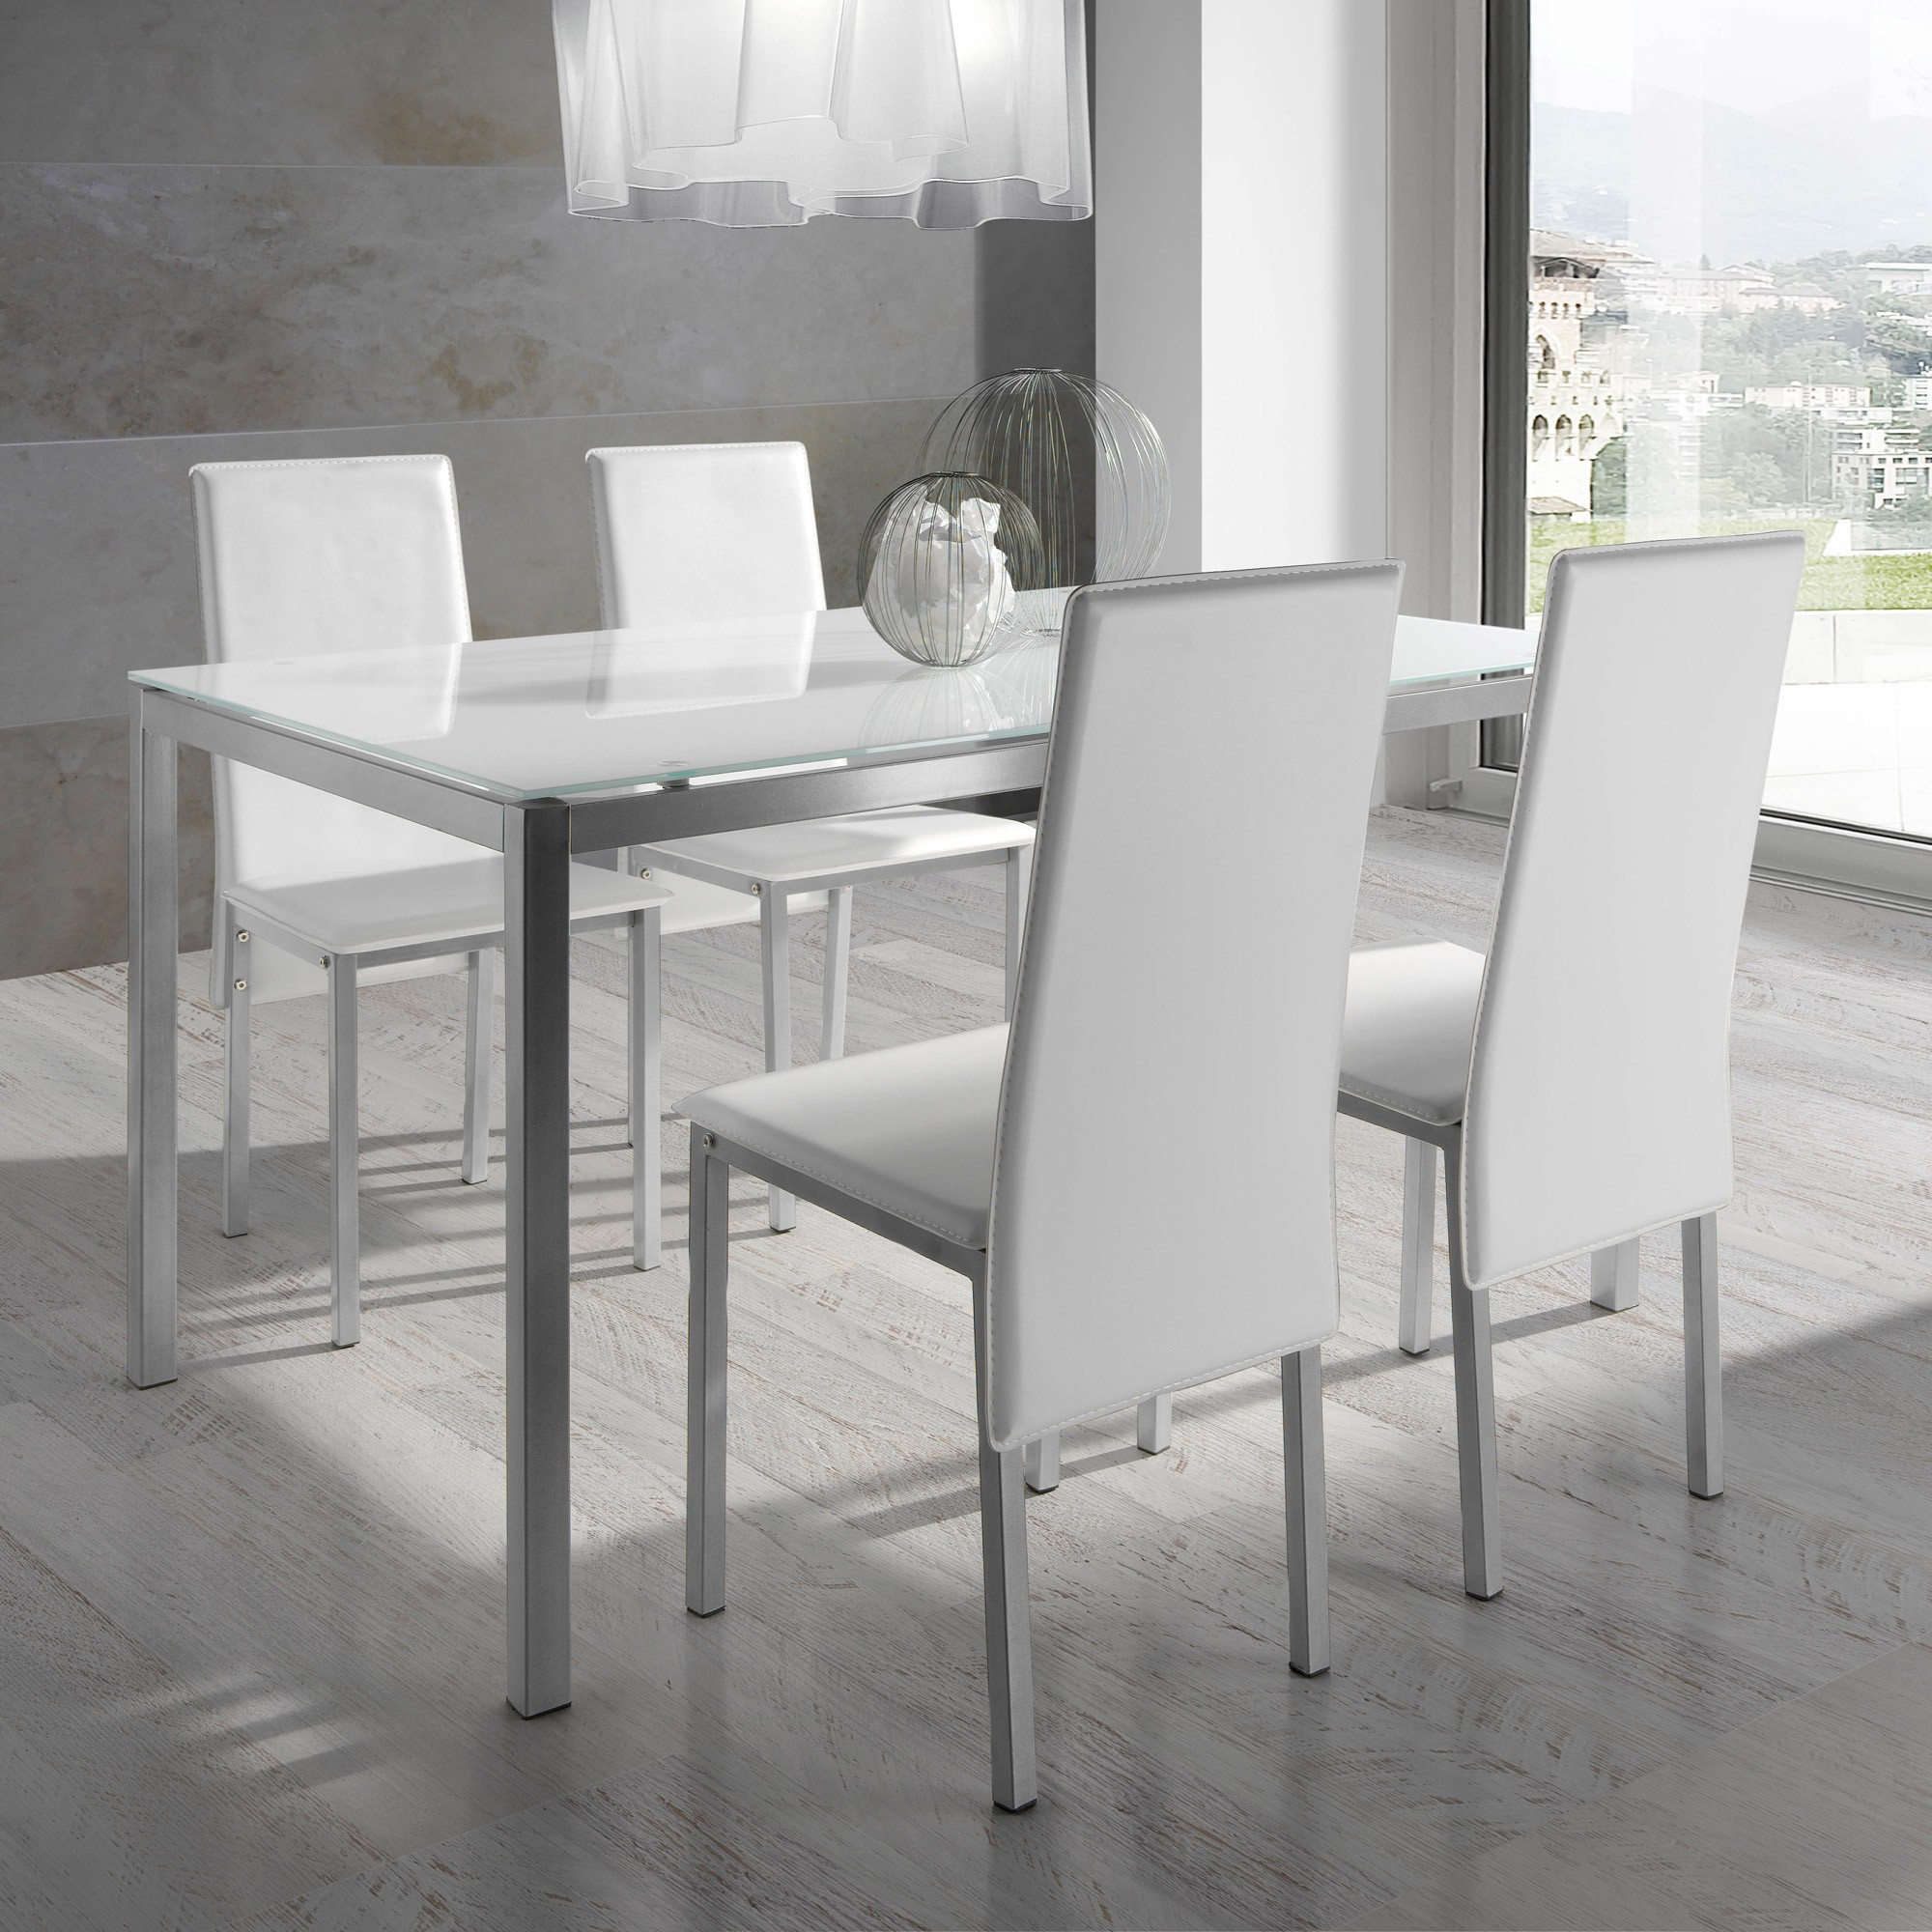 Ensemble table et chaise salle a manger but chaise for Chaises design salle a manger